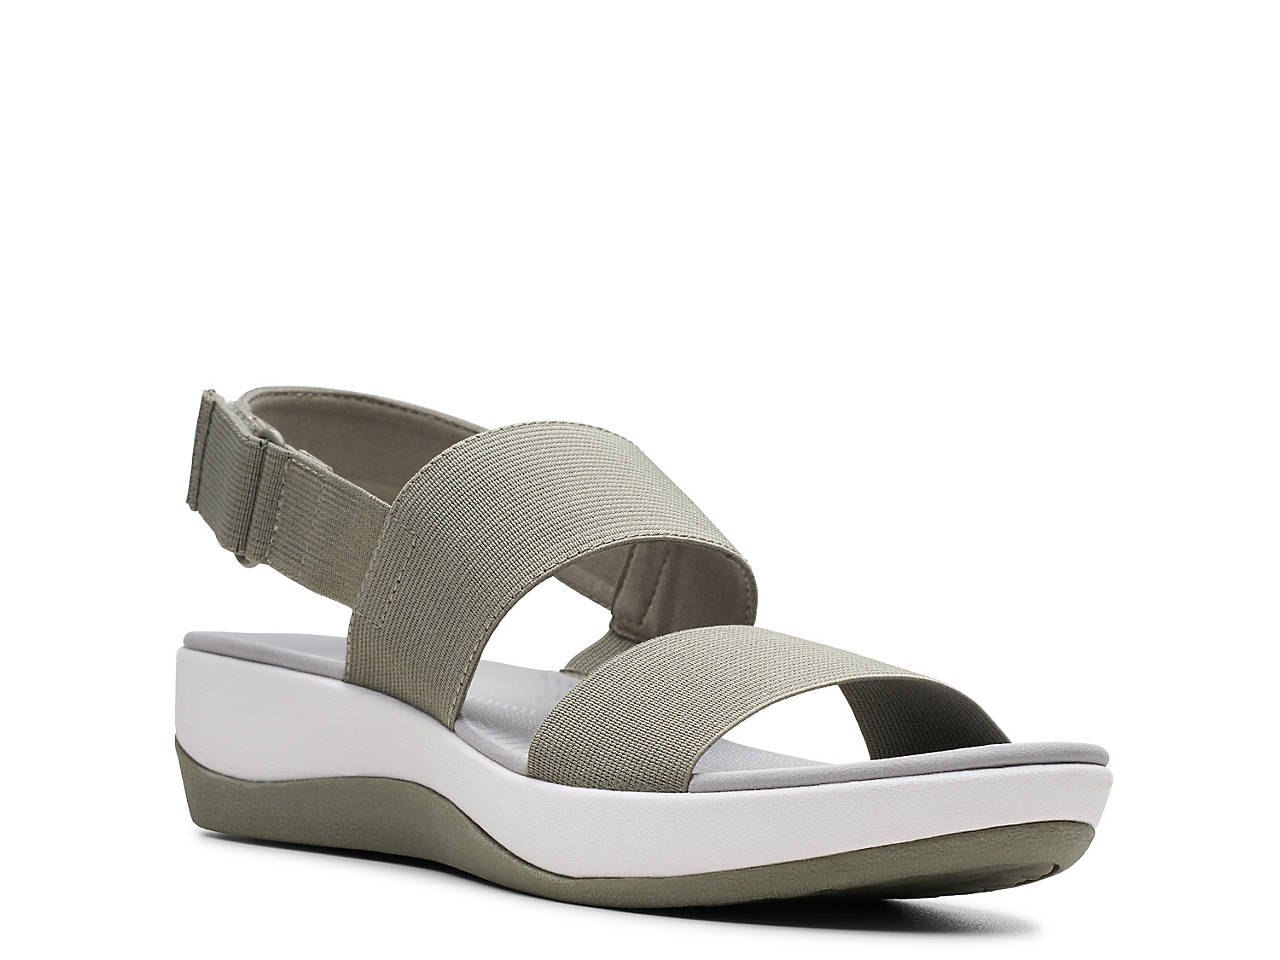 a9426cdc808 Cloudsteppers by Clarks Arla Jacory Sandal Women s Shoes